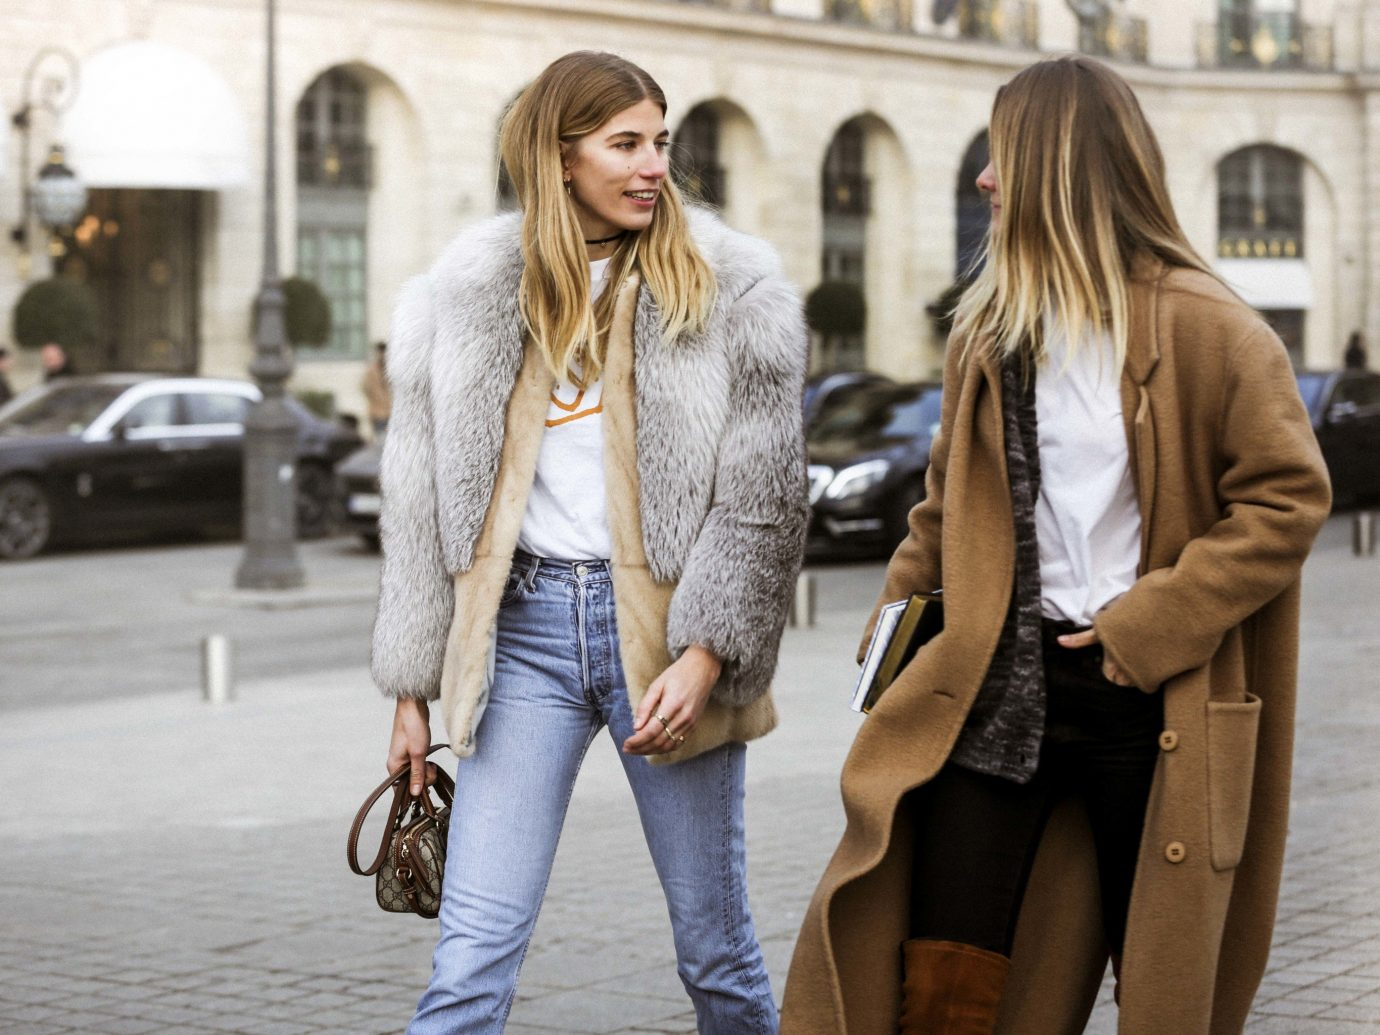 Arts + Culture Hotels Style + Design Trip Ideas person outdoor building woman ground clothing street footwear sidewalk jacket leather fur Winter outerwear fashion fur clothing jeans denim textile spring coat City material